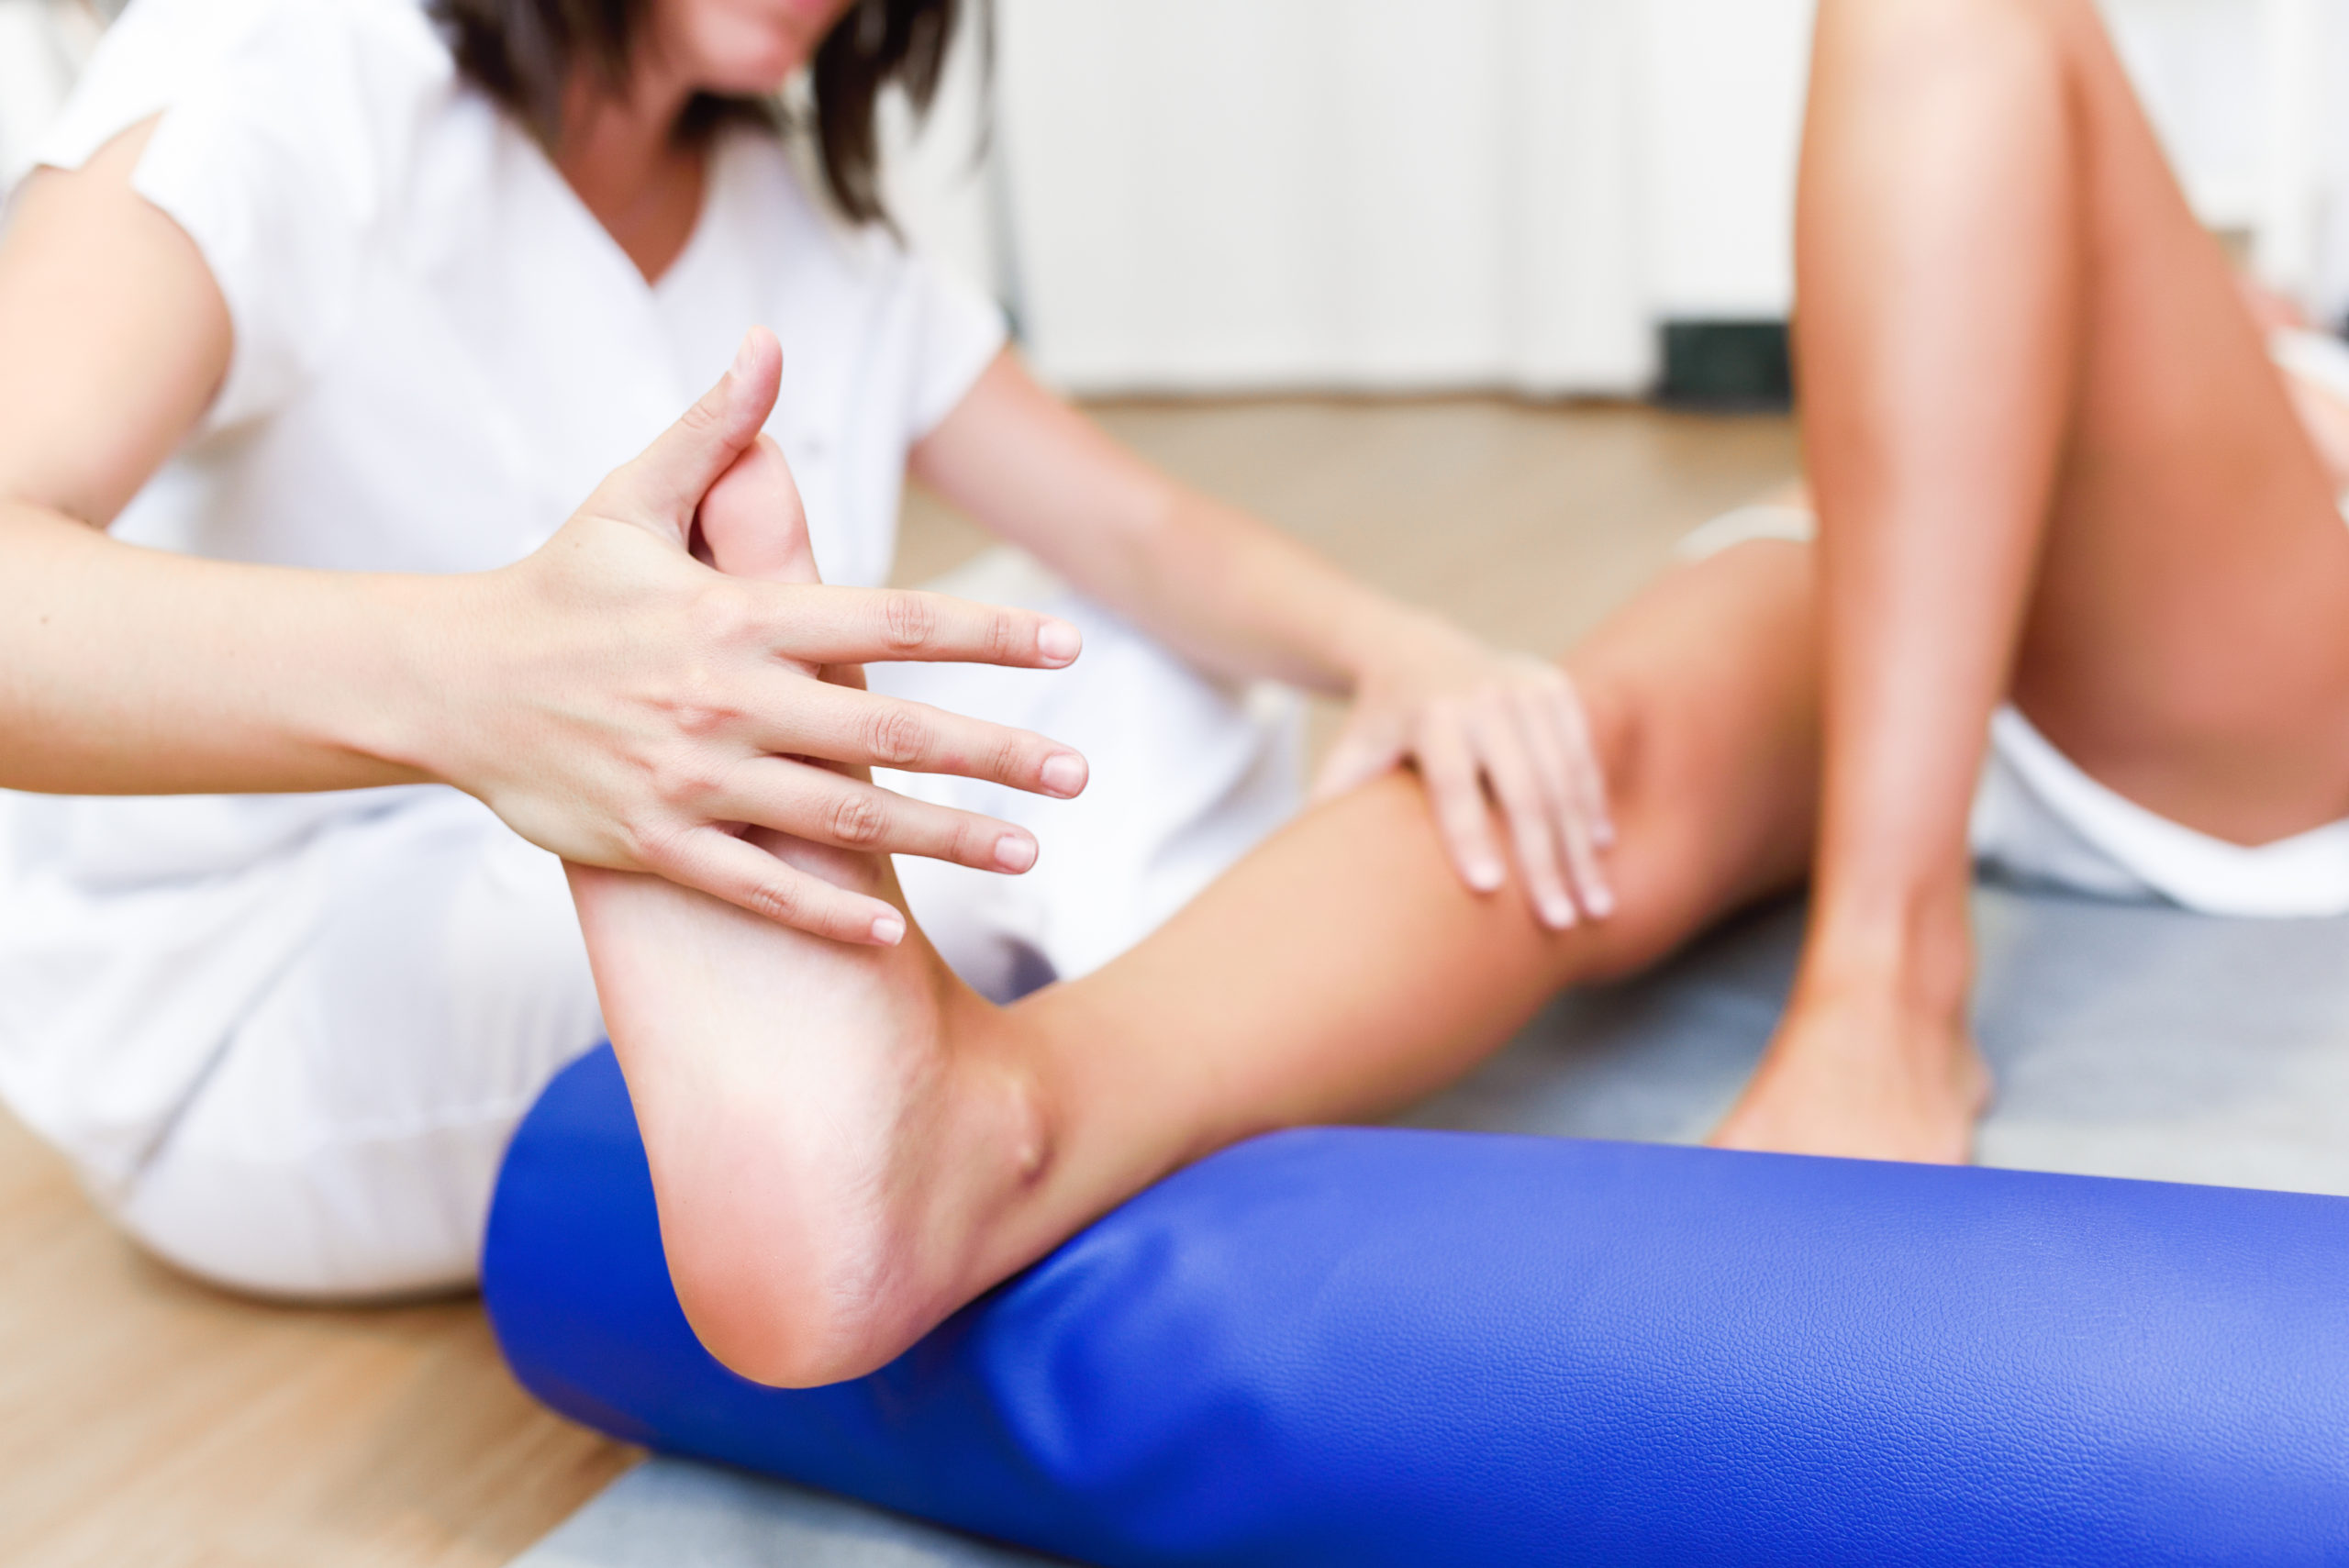 Fisioterapia: entenda o que é e para que serve!